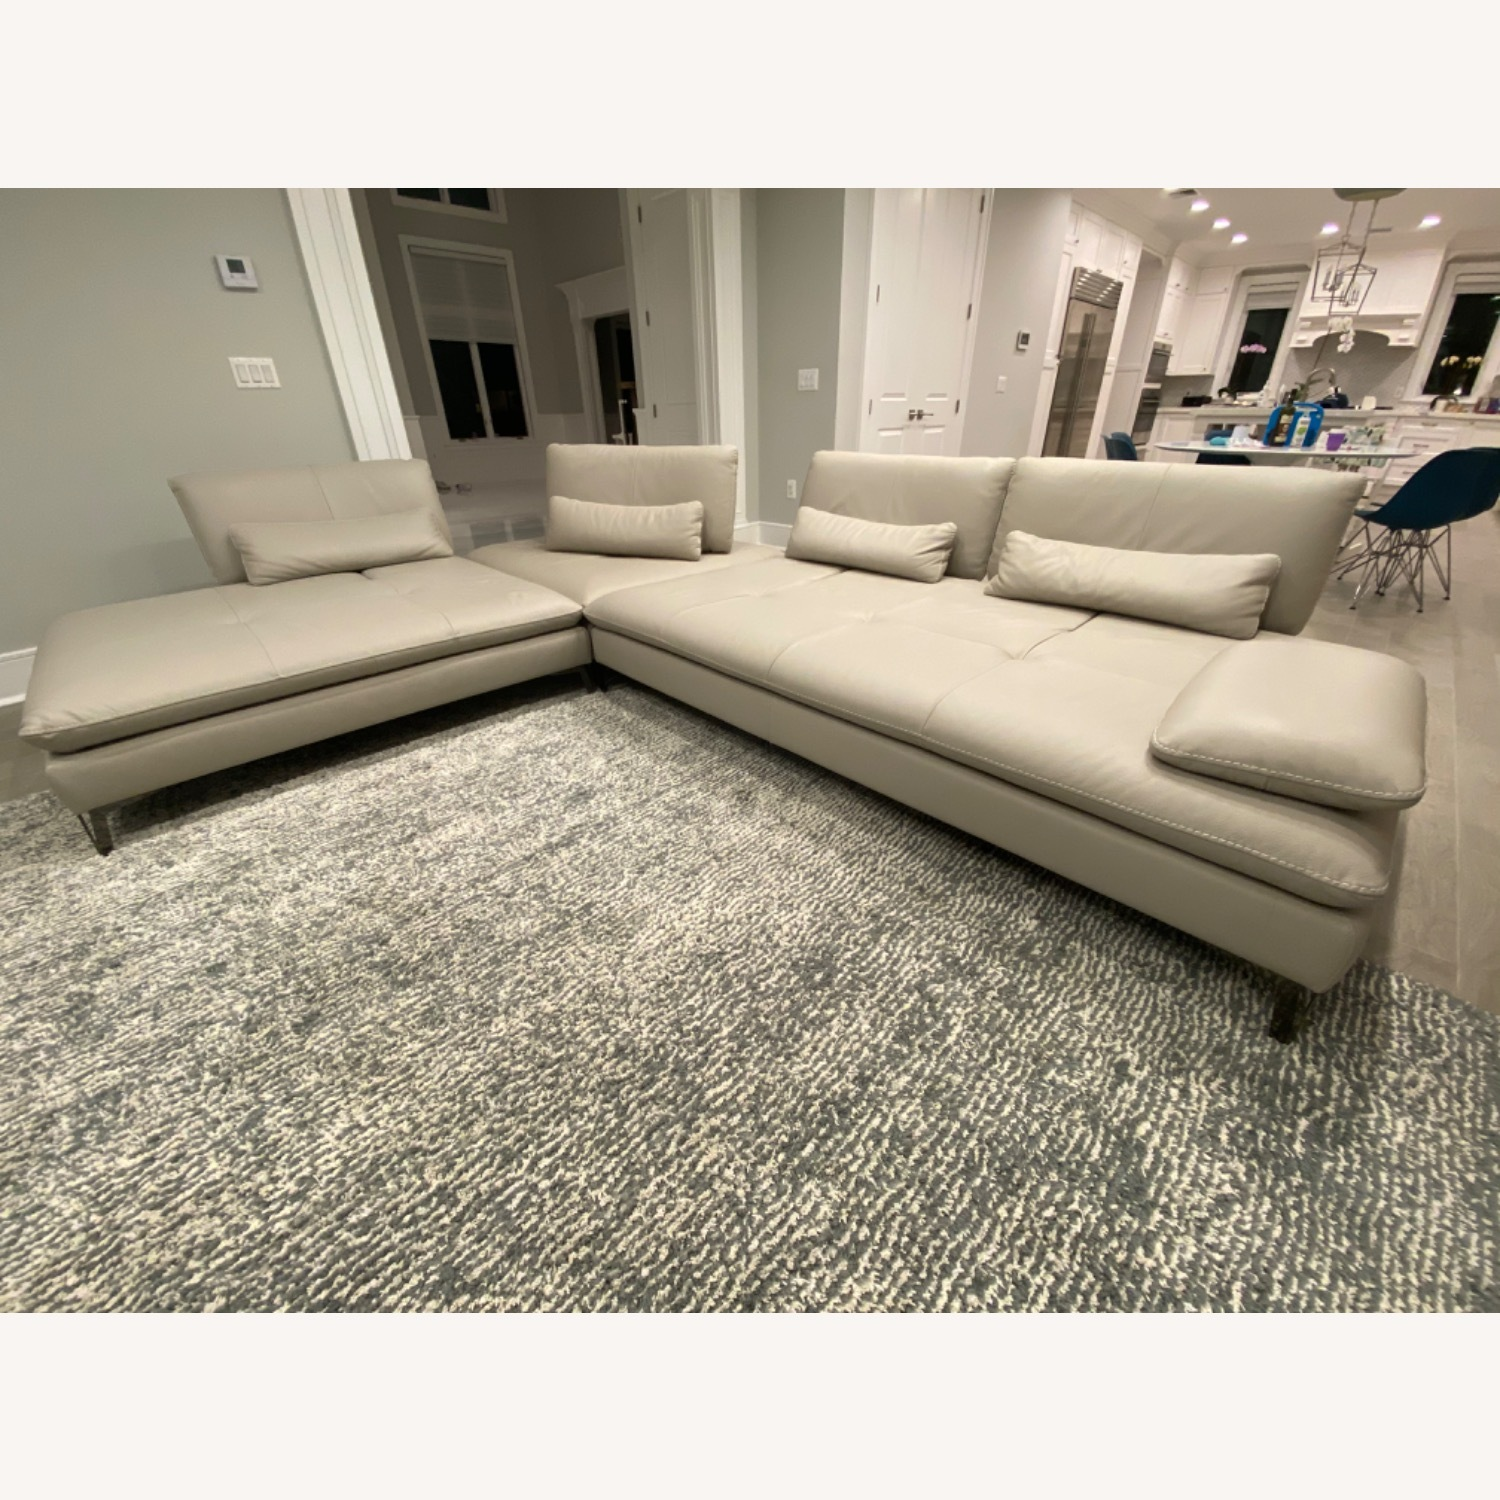 Roche Bobois Leather Sectional - image-3